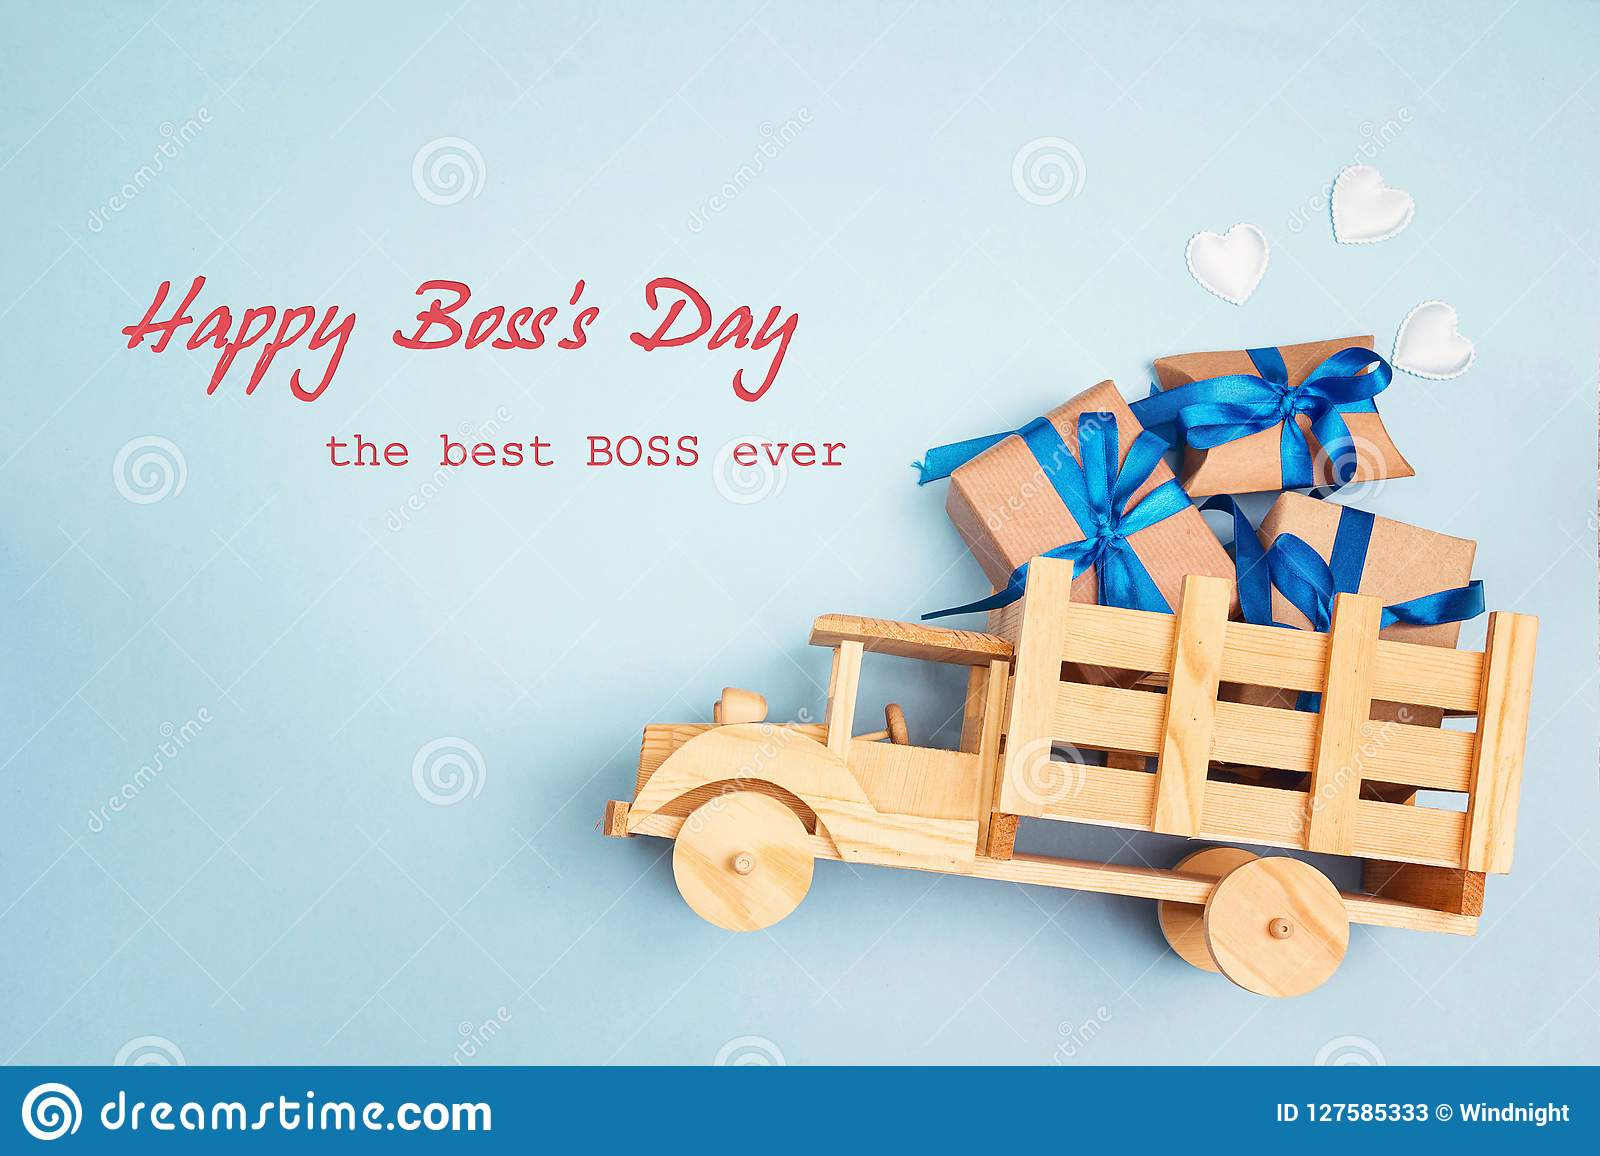 Boss day greeting card with wooden toy truck and gift box in the boss day greeting card with wooden toy truck and gift box in the m4hsunfo